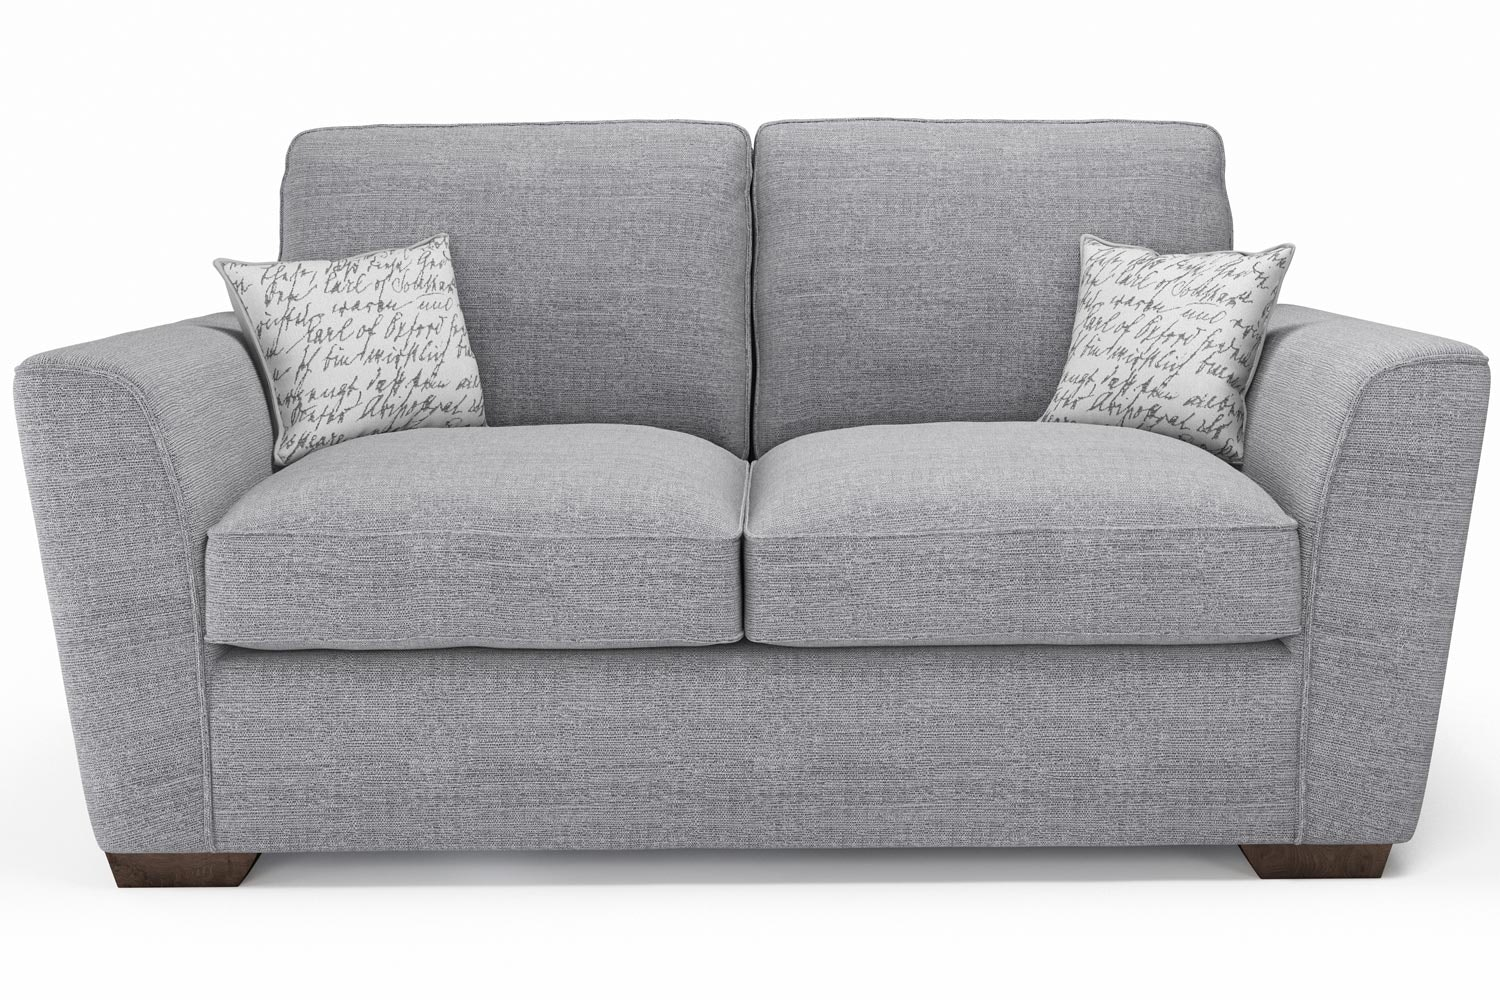 Fantasia 2 Seater Sofa